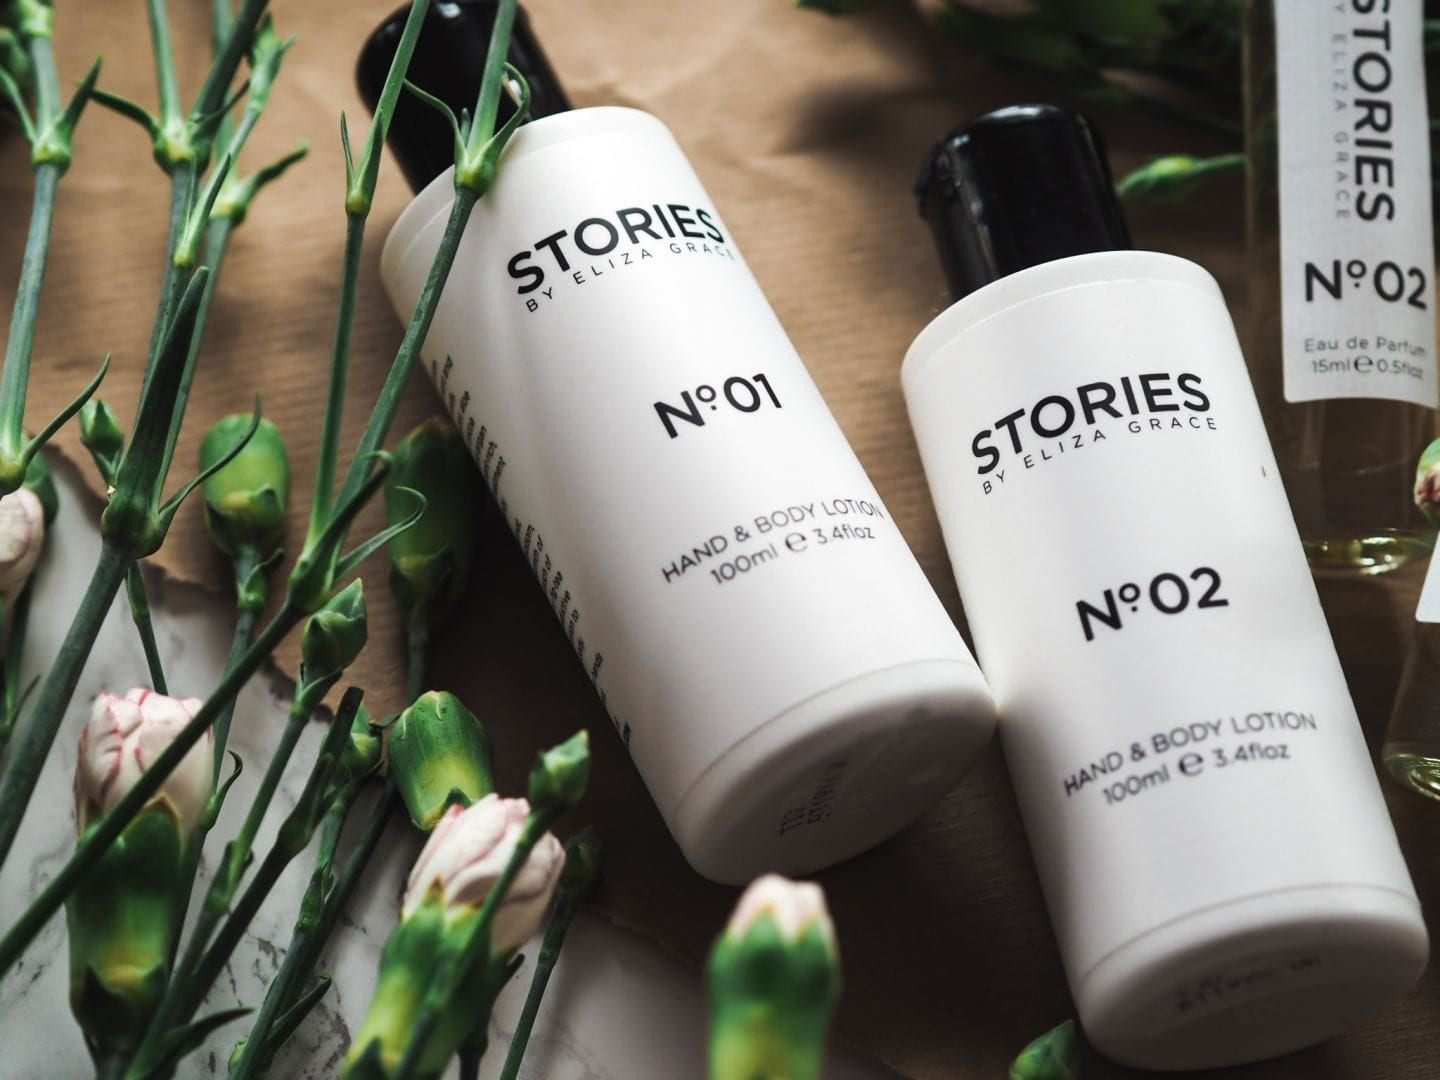 stories by eliza grace perfume body lotion